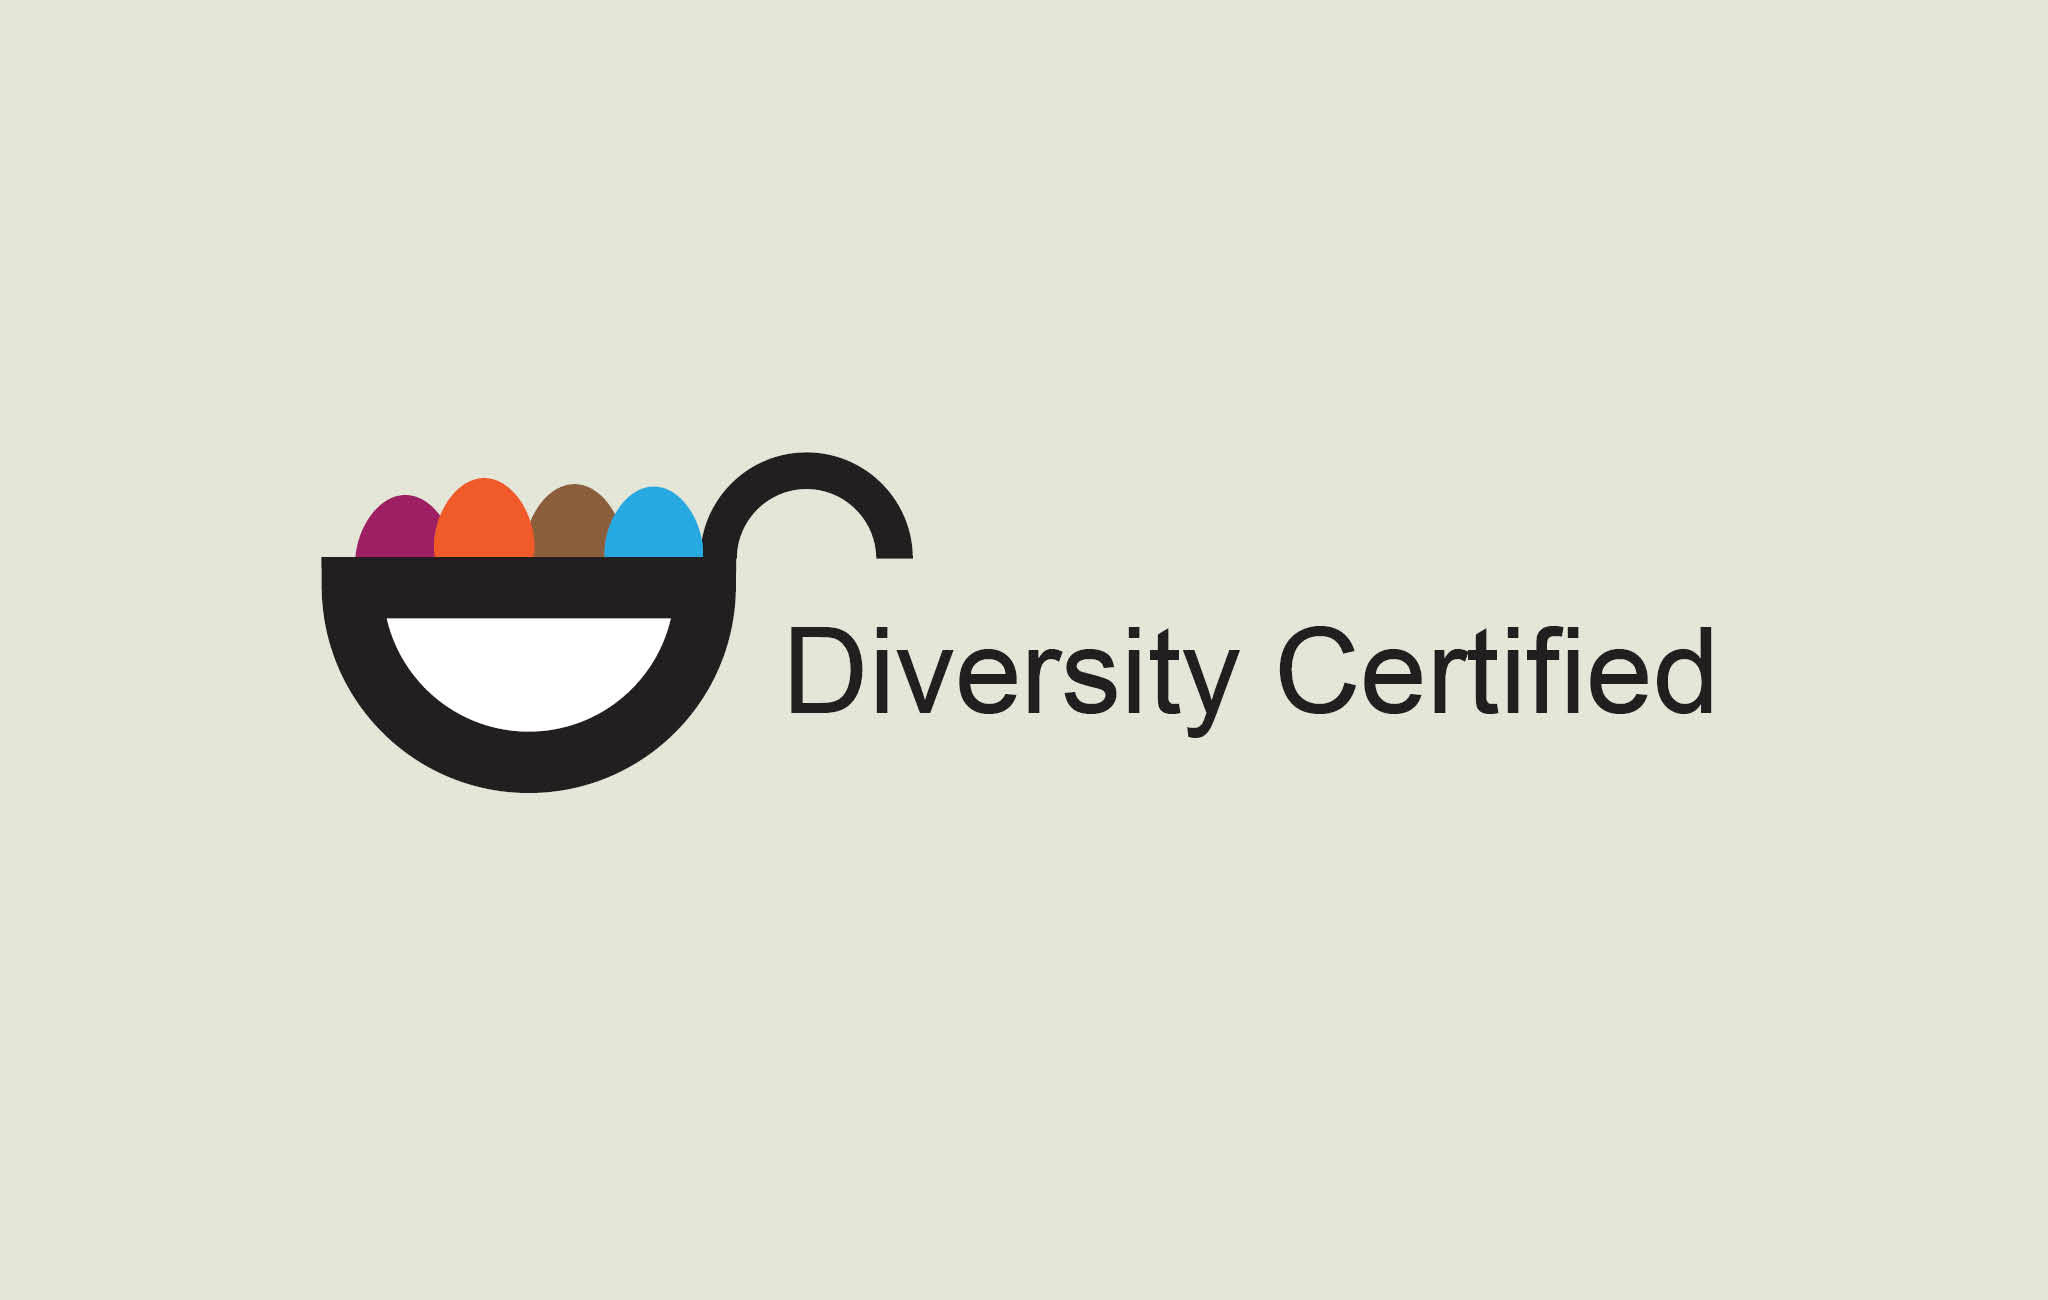 Brand logo for Diversity Certified